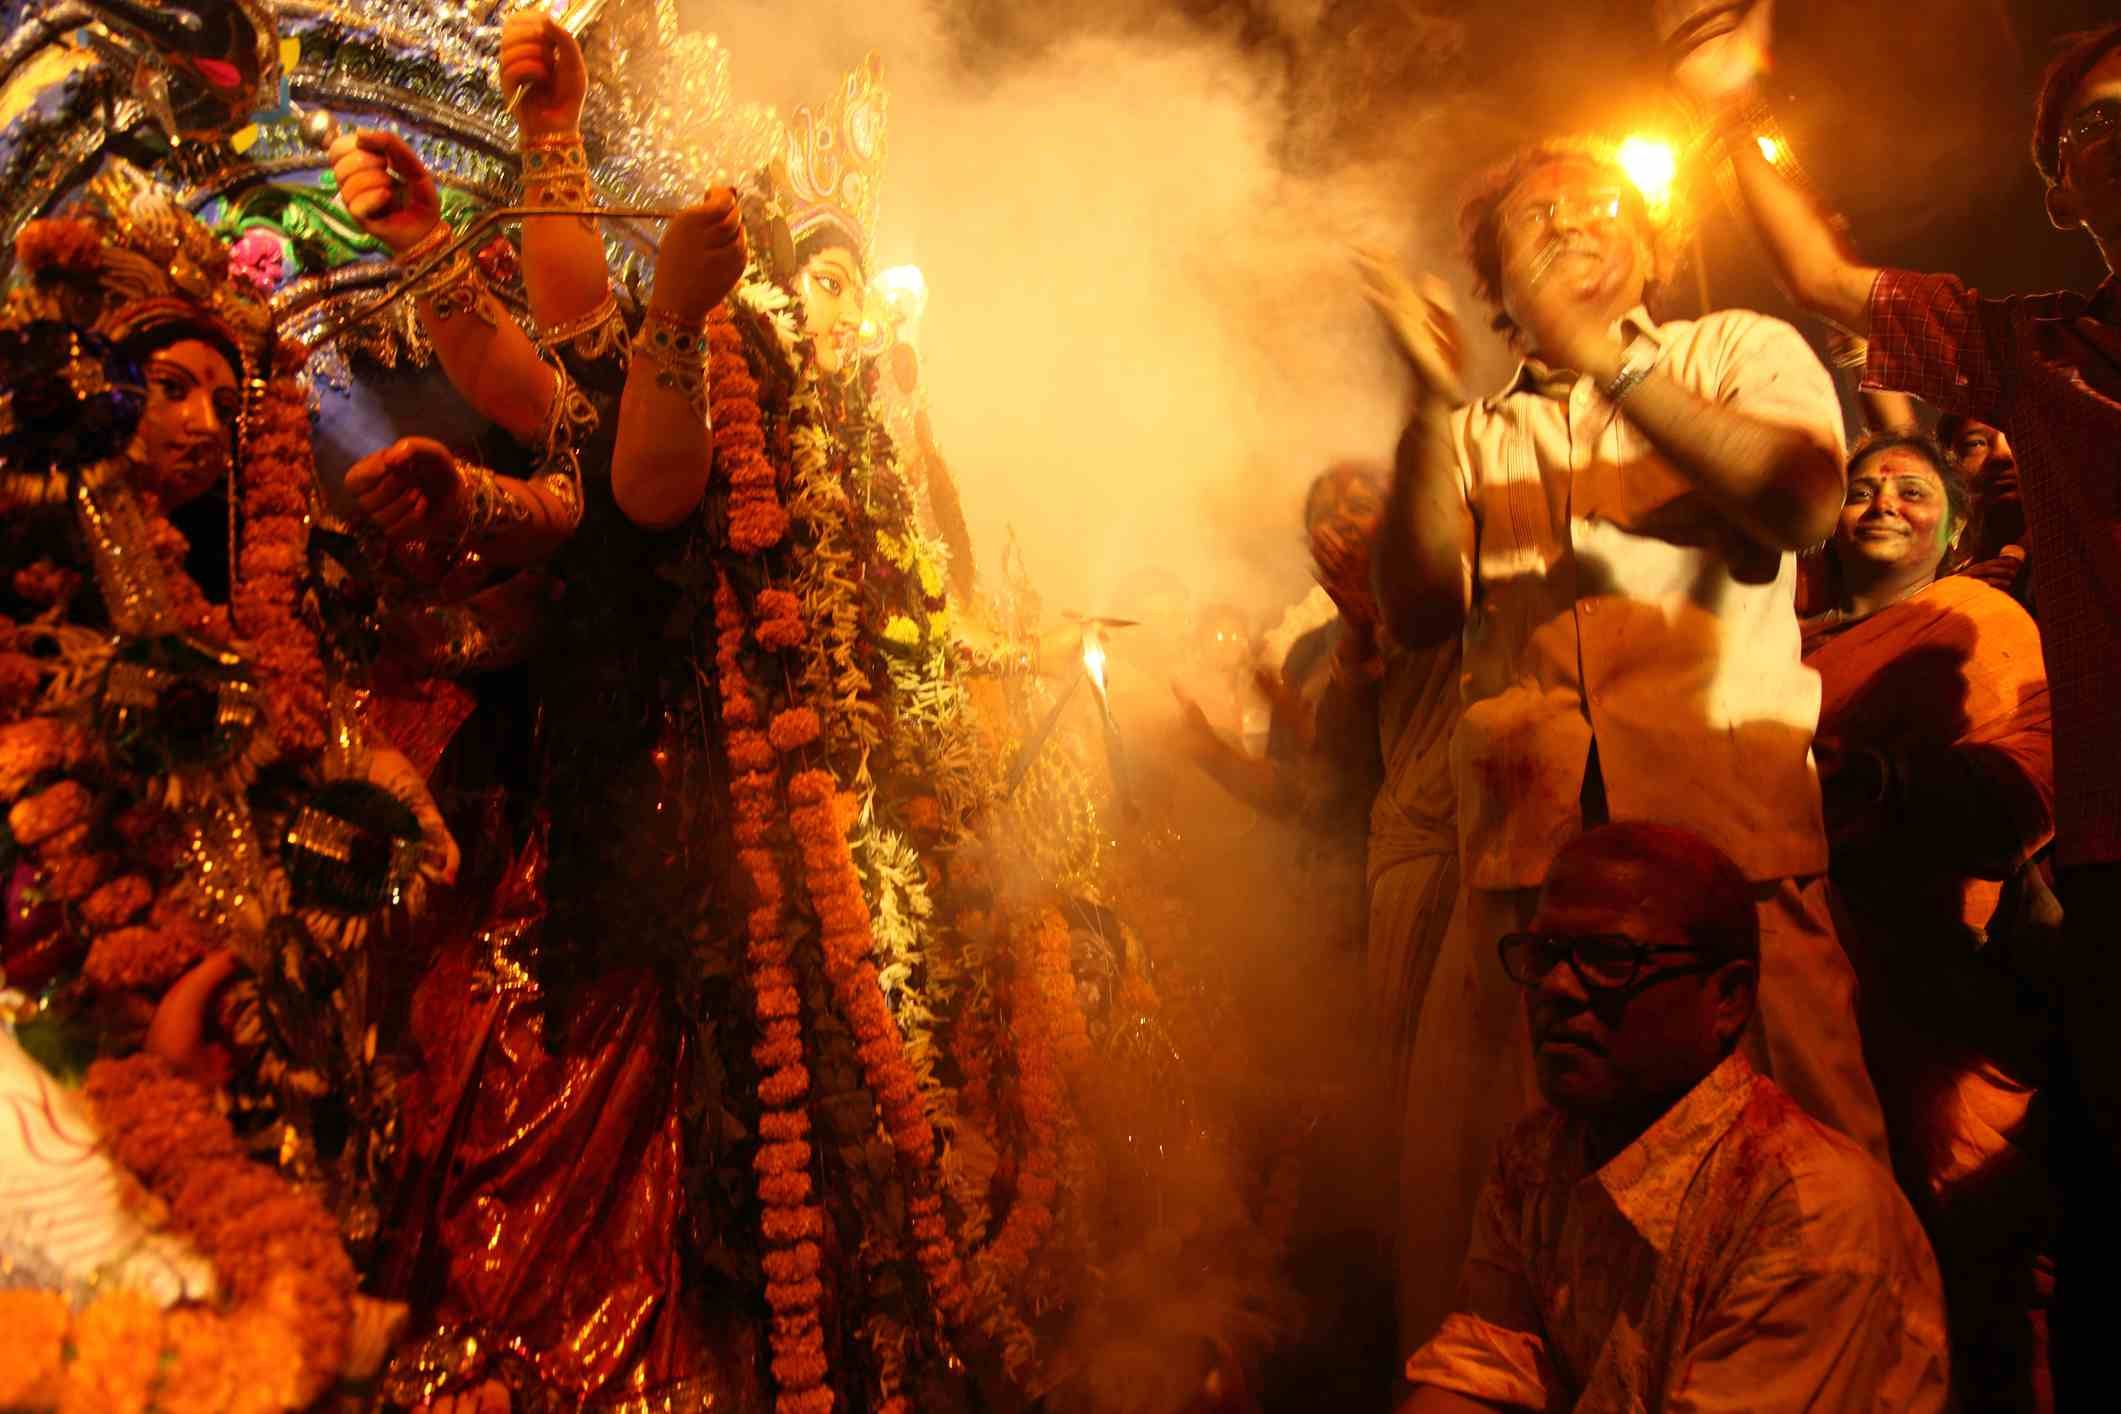 Devotees praying and dancing in-front of Durga idol before immersing in the river during Durga Puja festival